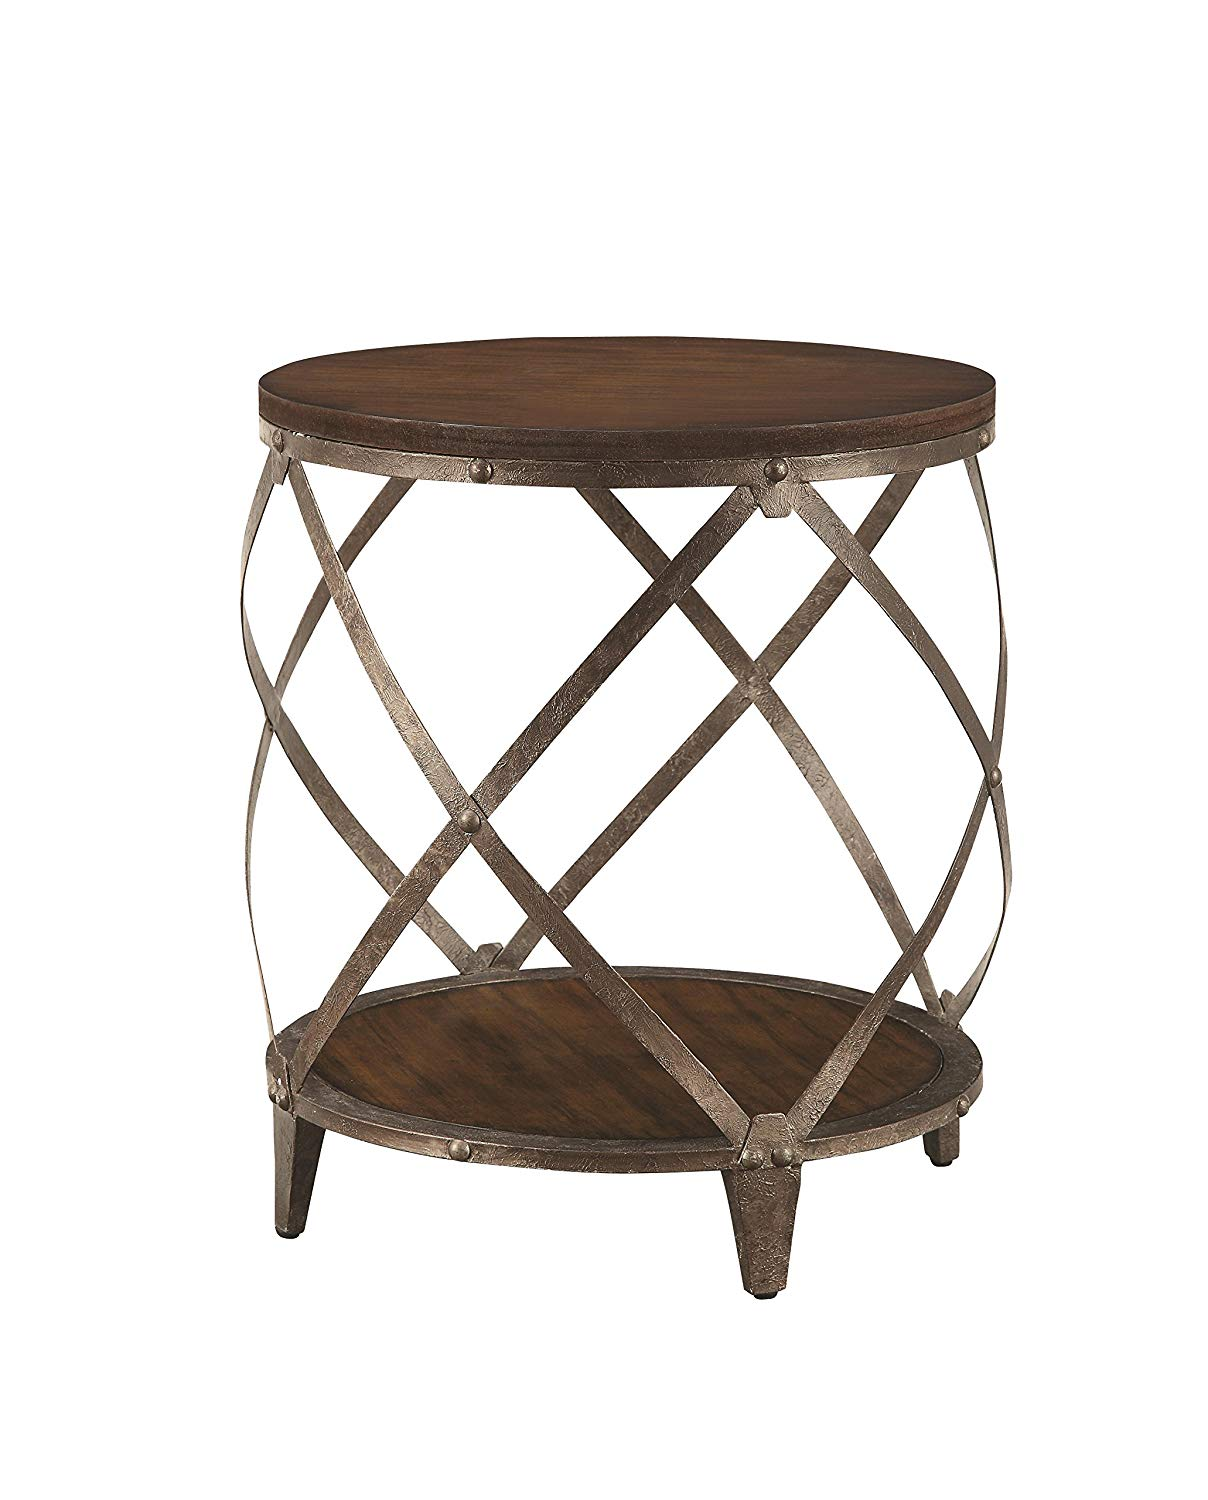 metal accent table with drum shape brown kitchen dining round ashley bedroom furniture pearl throne backrest sofa tables oval farmhouse mosaic garden chairs console lamps nesting